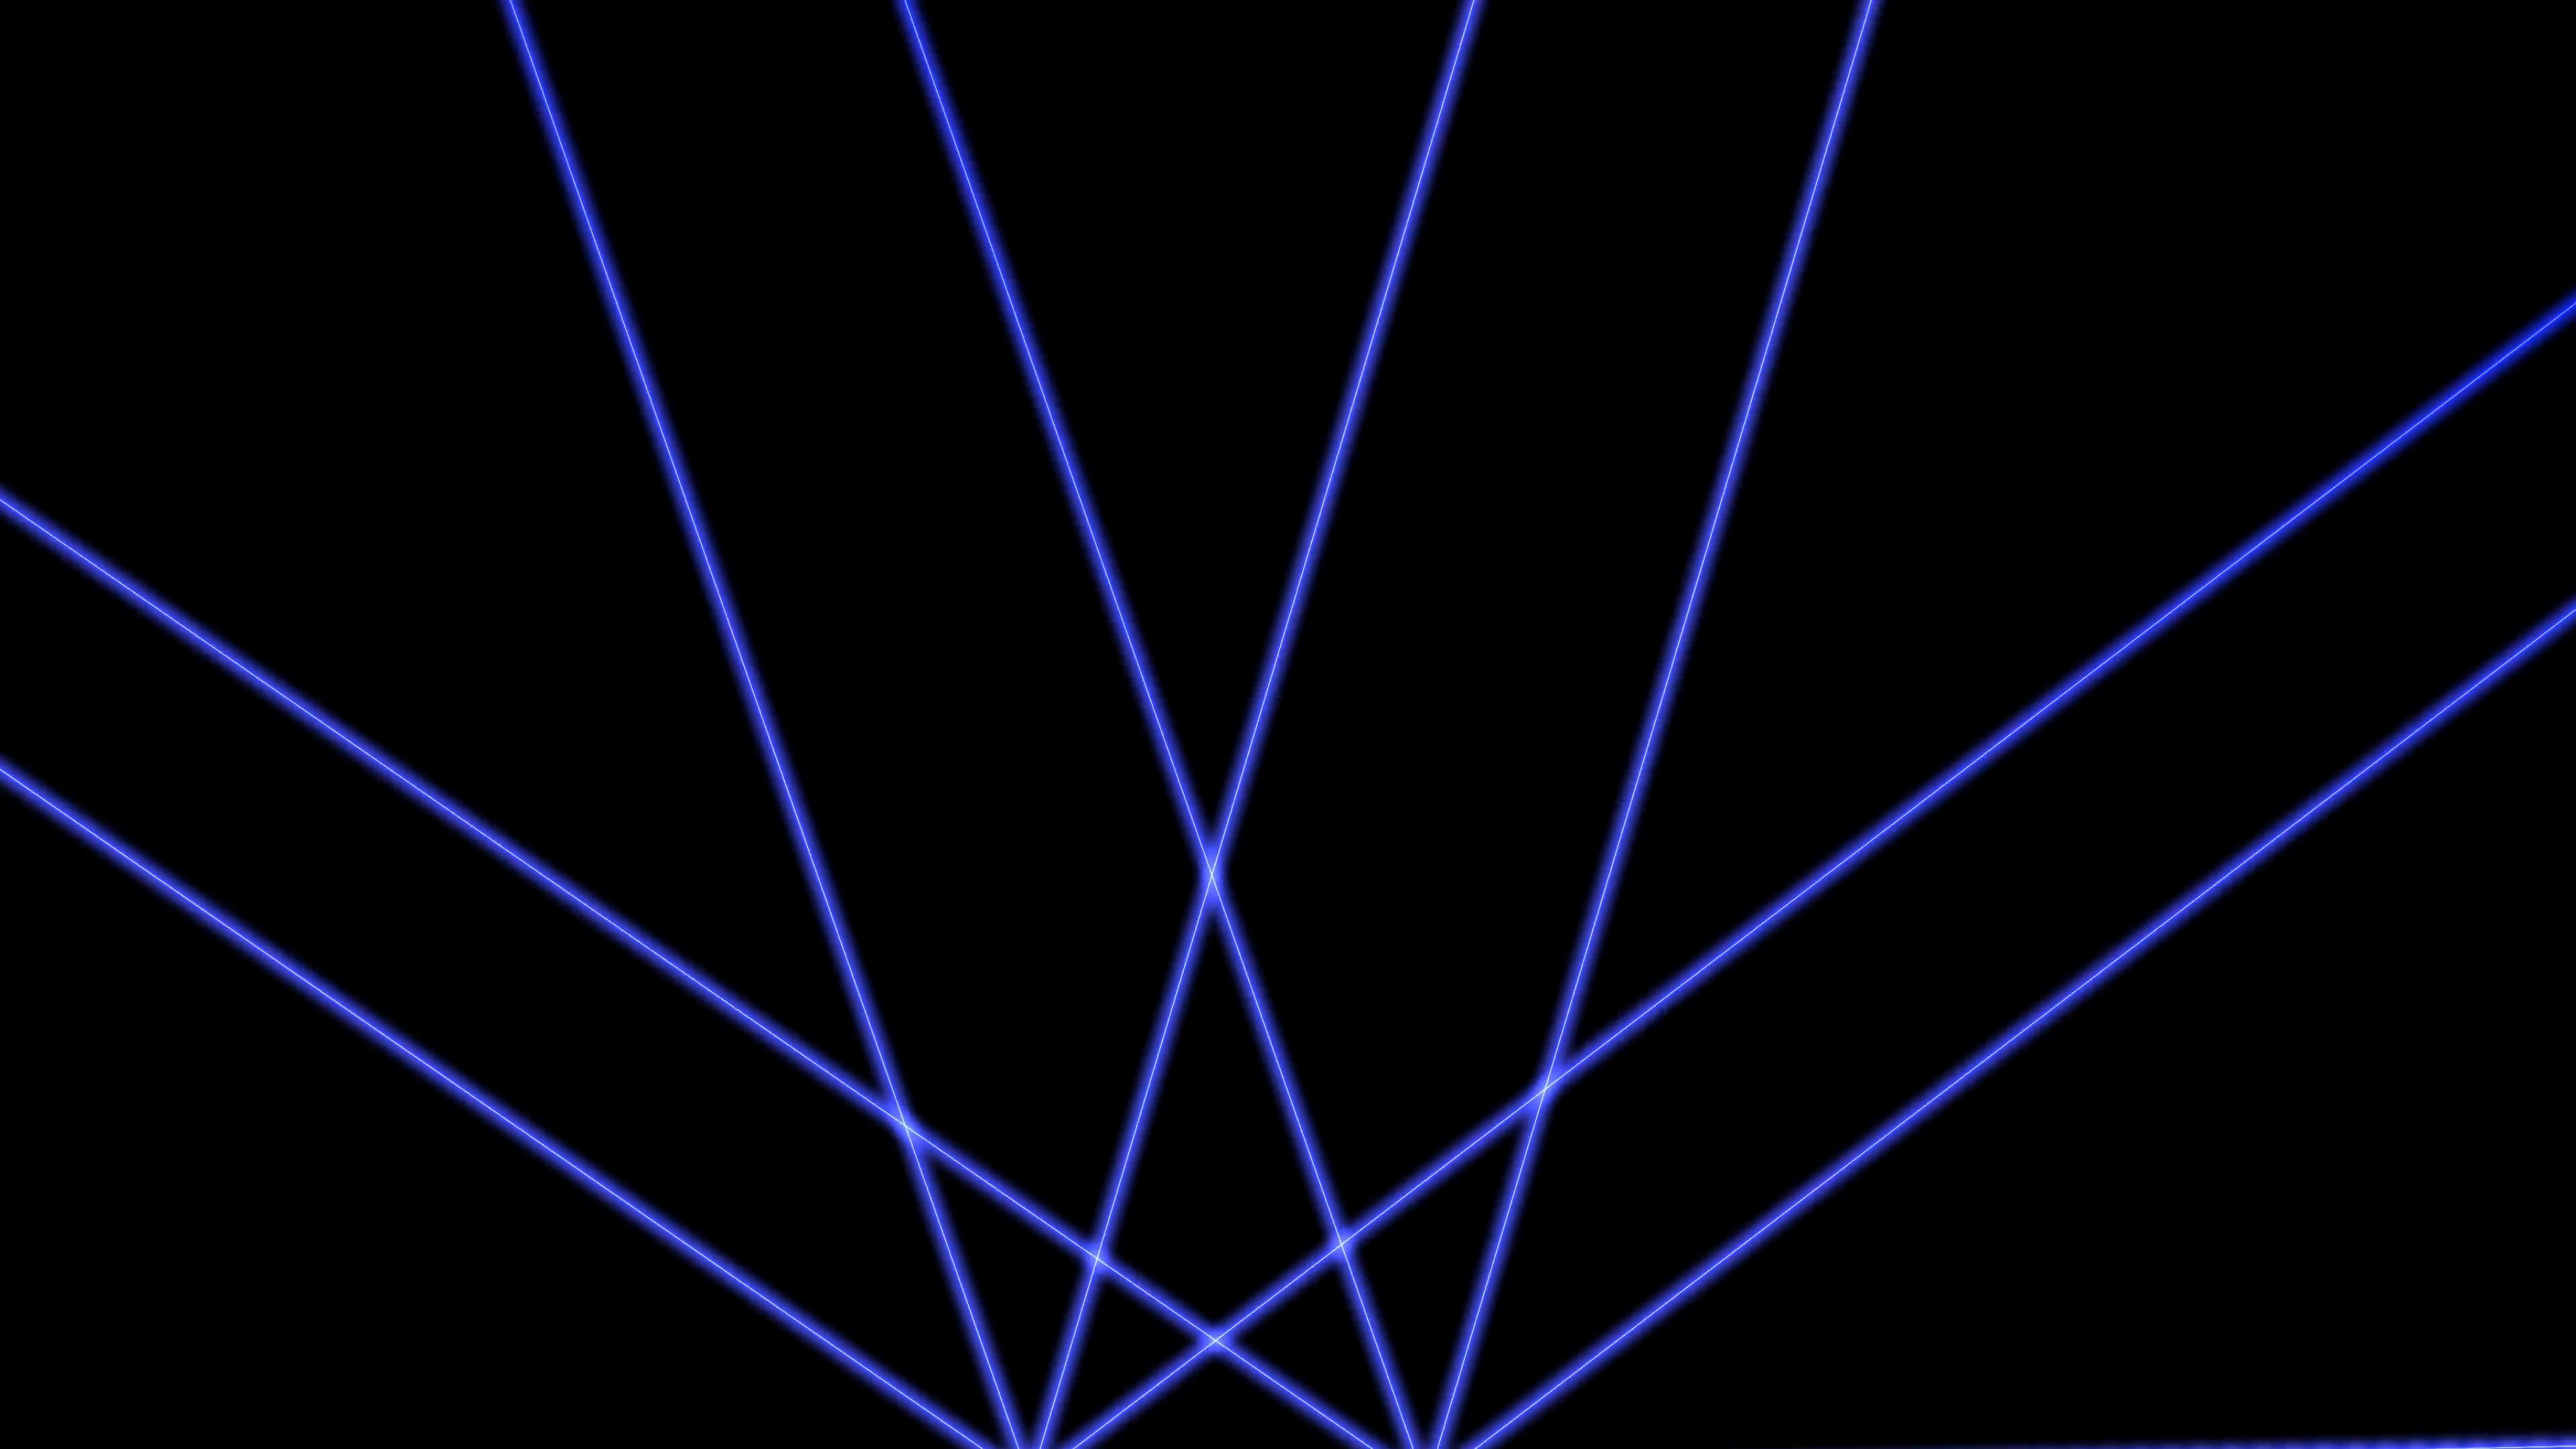 Laser Background 183 ① Download Free Awesome Wallpapers For